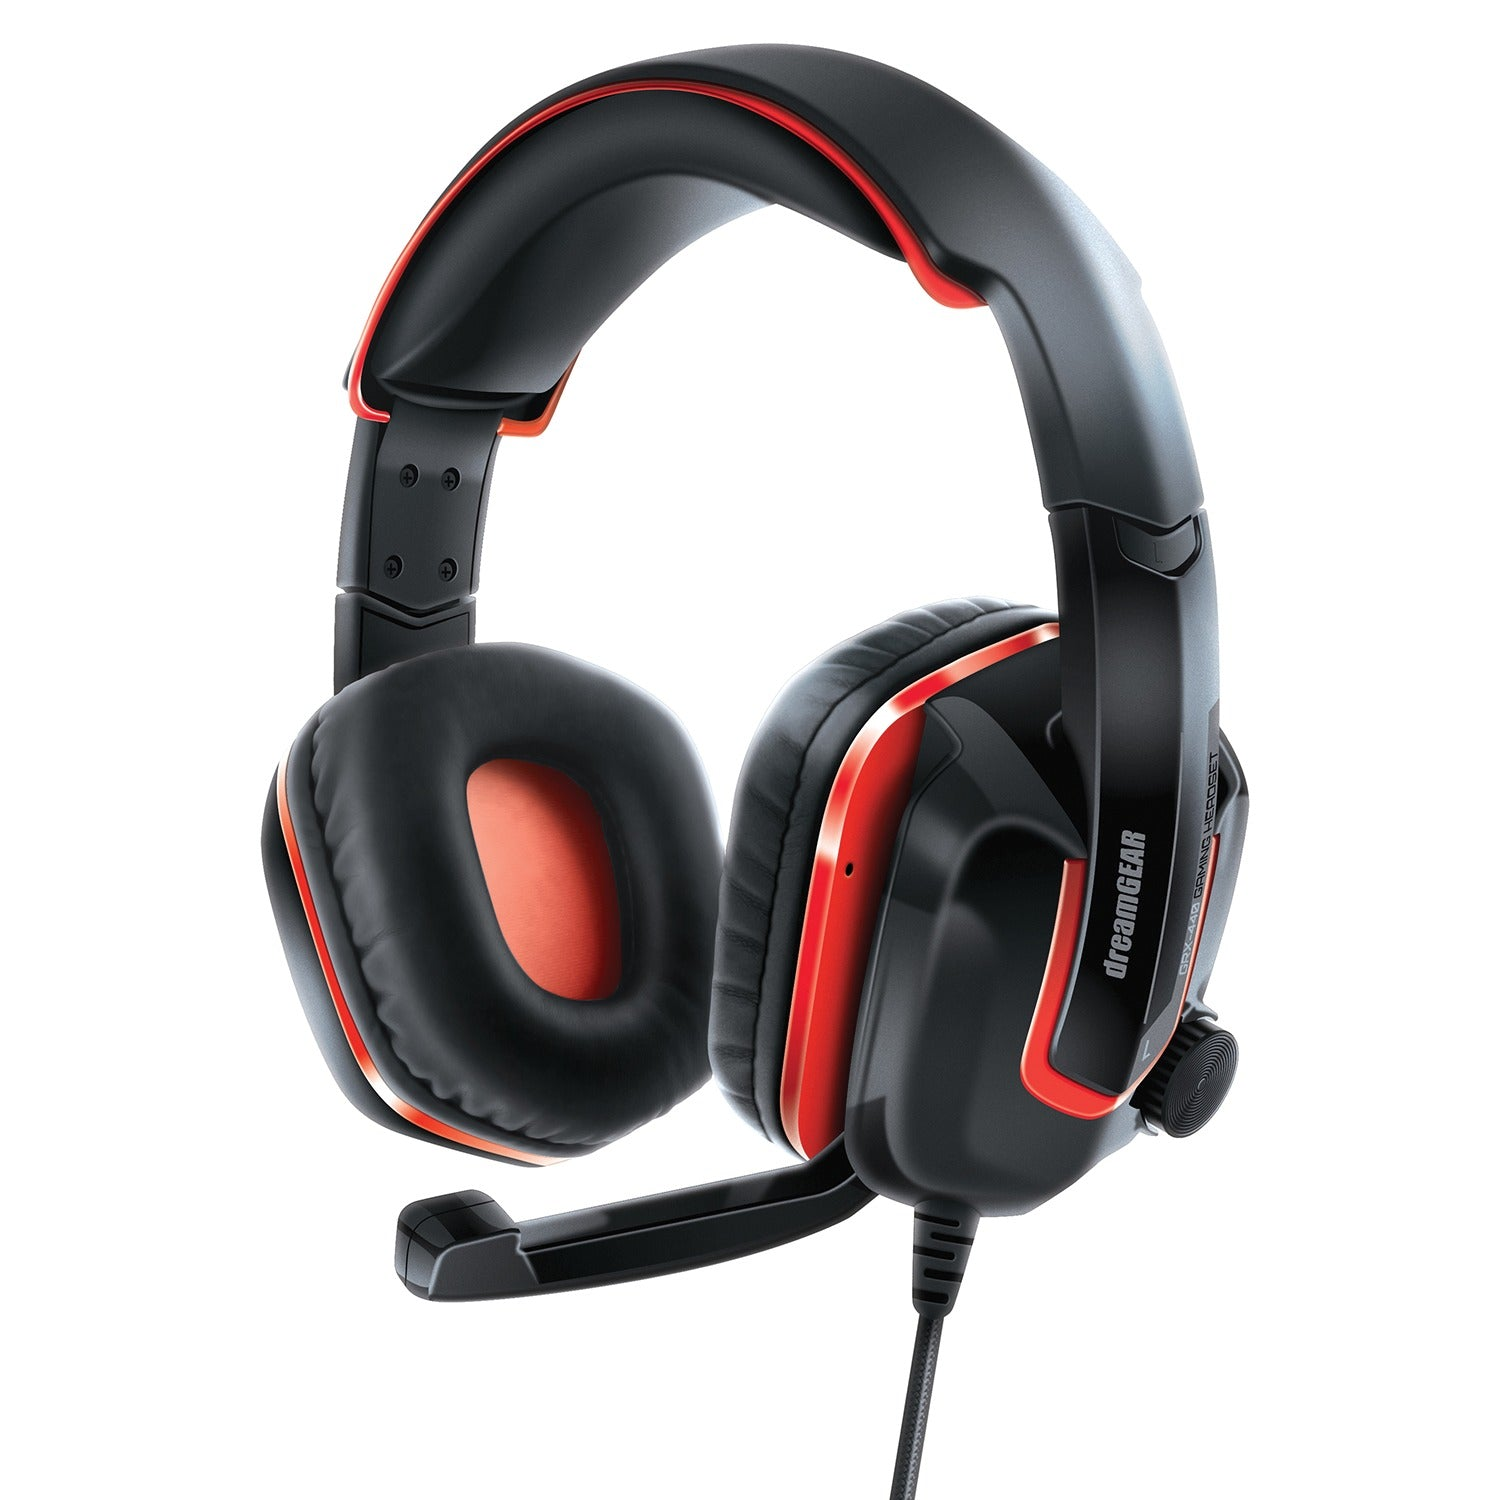 Bionik Grx-440 Gaming Headset For Nintendo Switch And Switch Lite